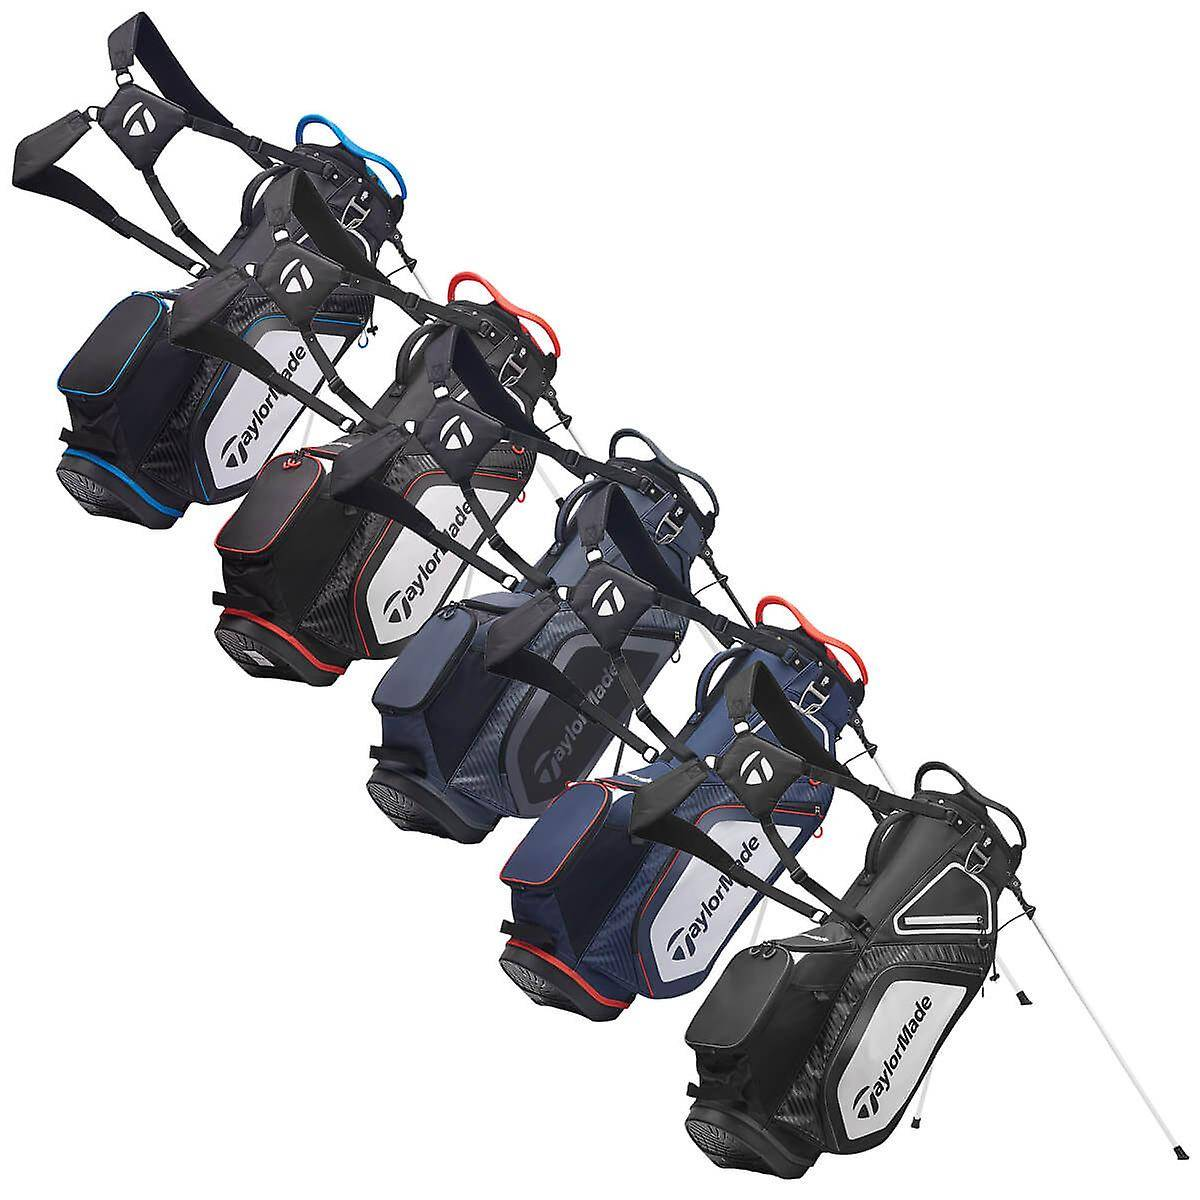 Taylor Made Taylormade Homme 2020 Pro Cart 8.0 Léger Résistant à l'eau 8 Way Golf Bag Noir/anthracite One Size